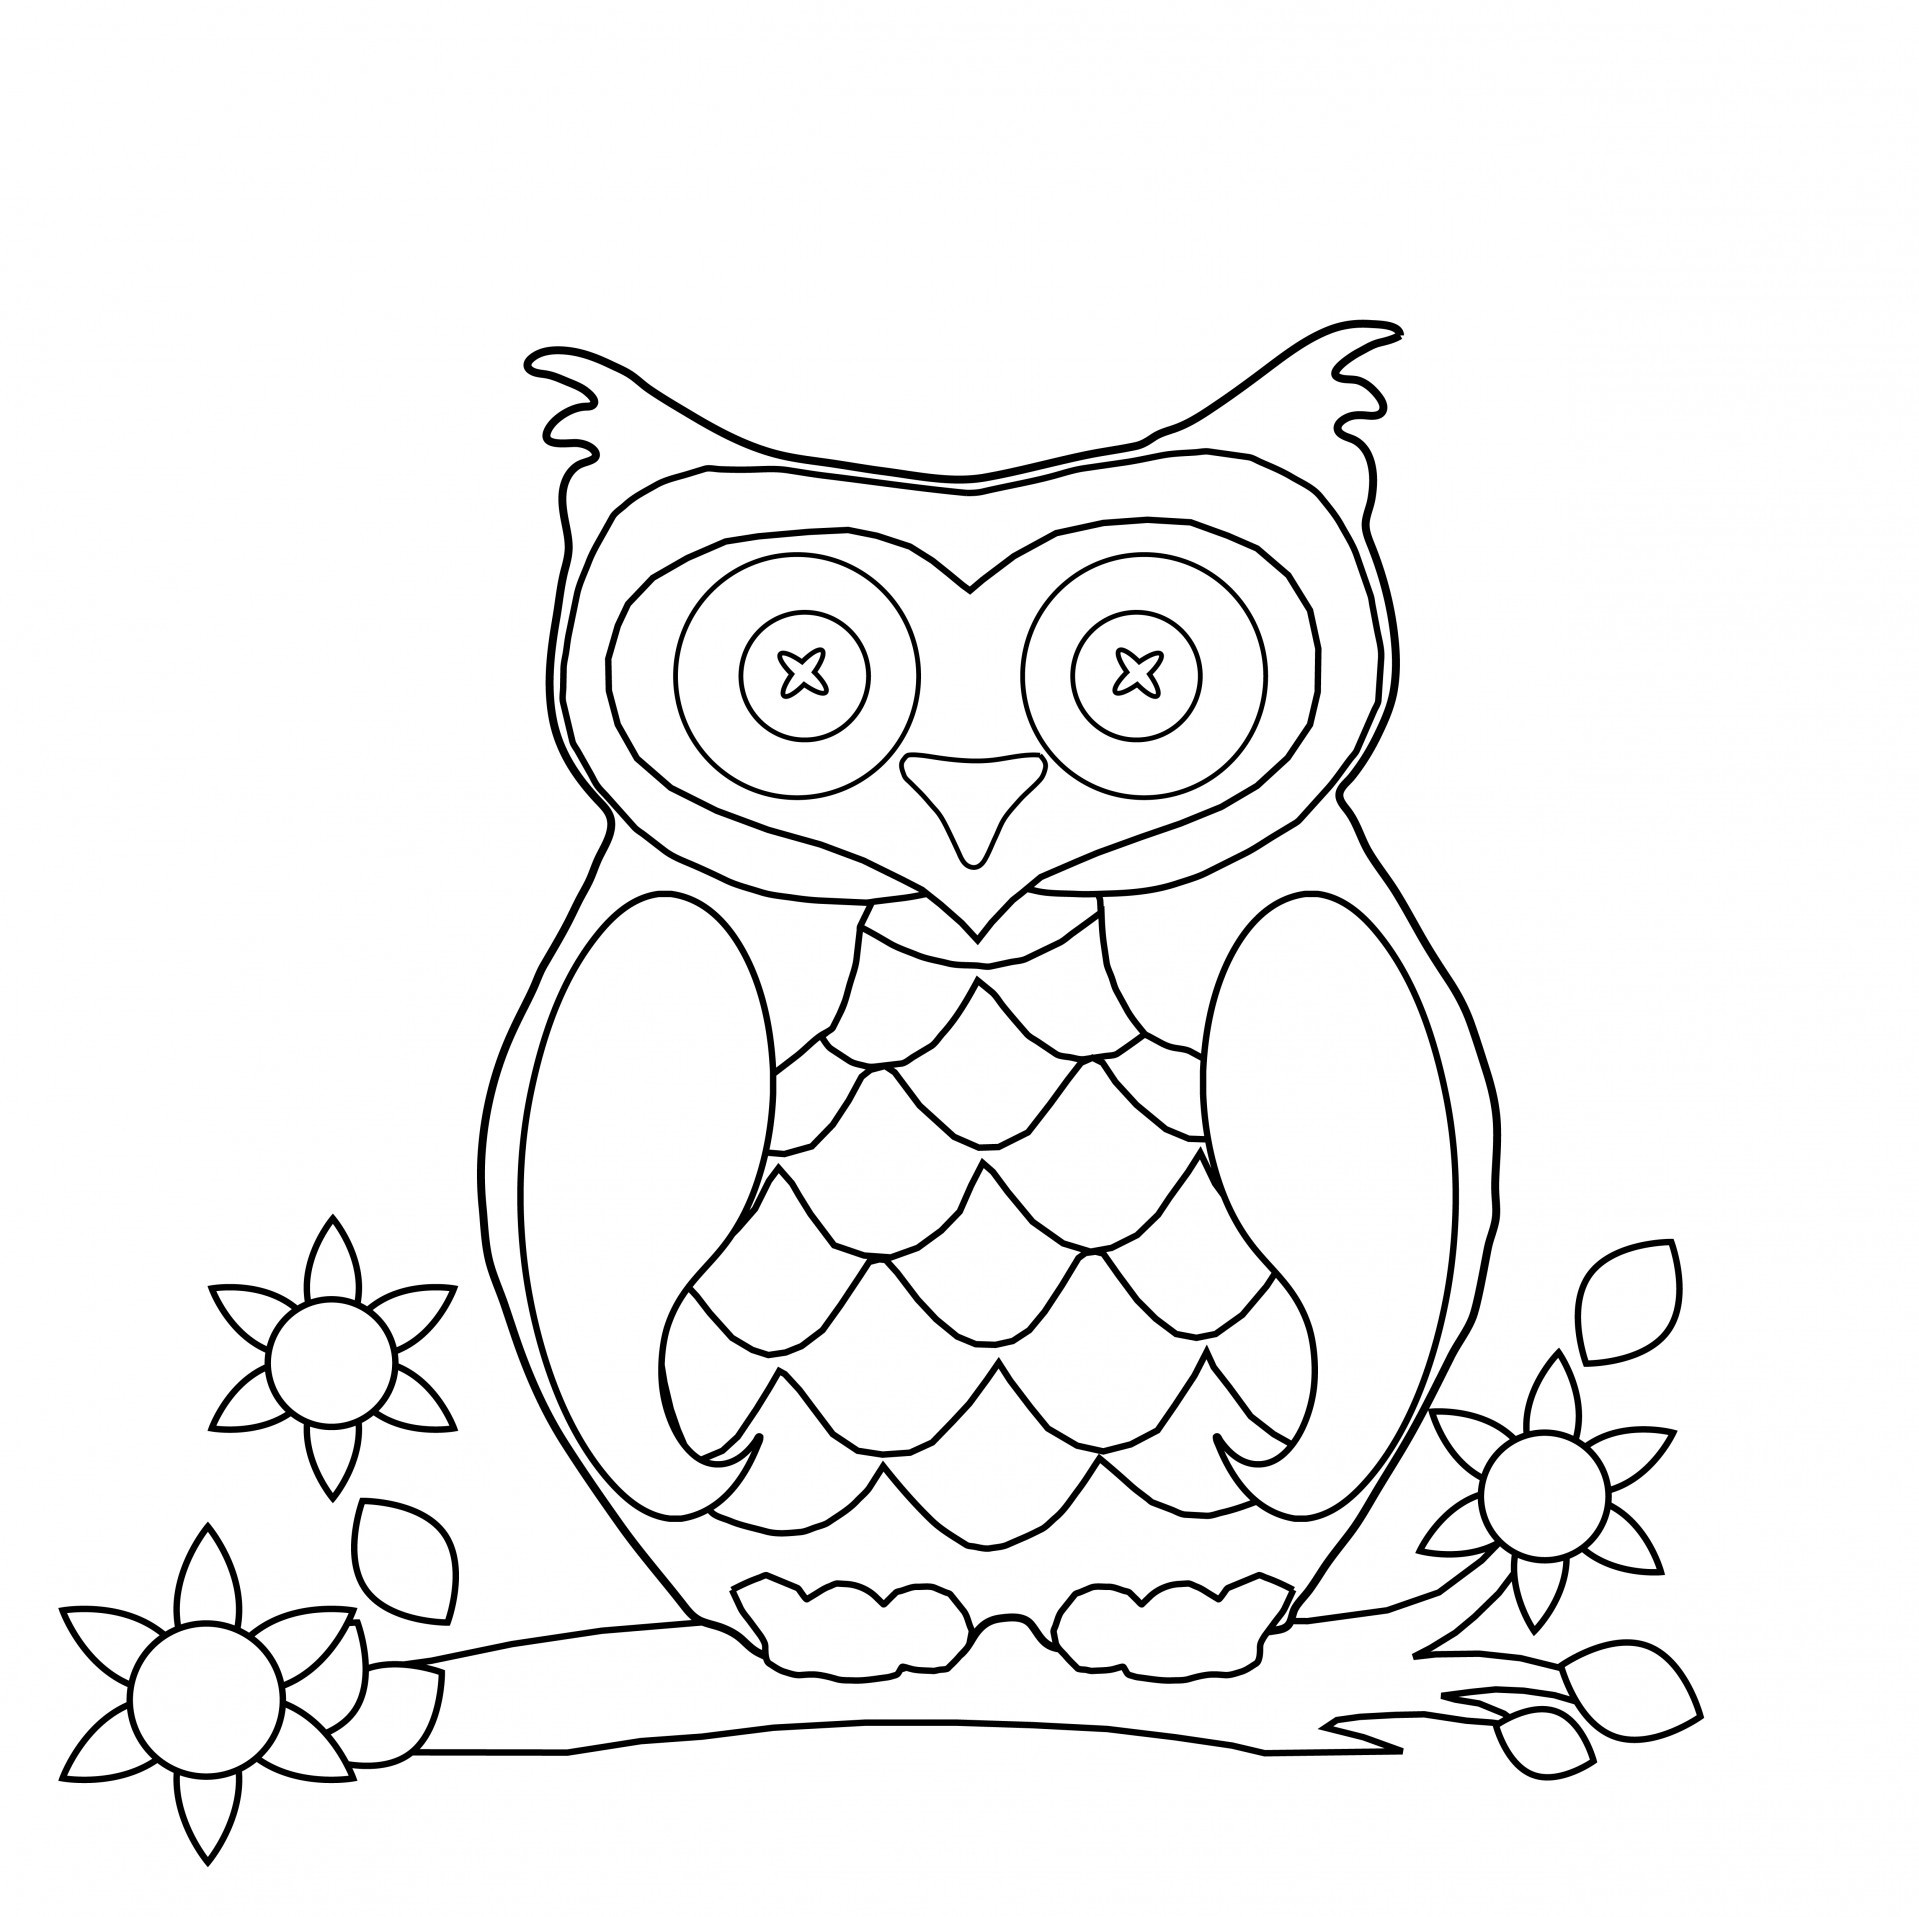 abstract owl coloring pages pin by 333lorie on adult coloring pages owl coloring pages coloring owl abstract